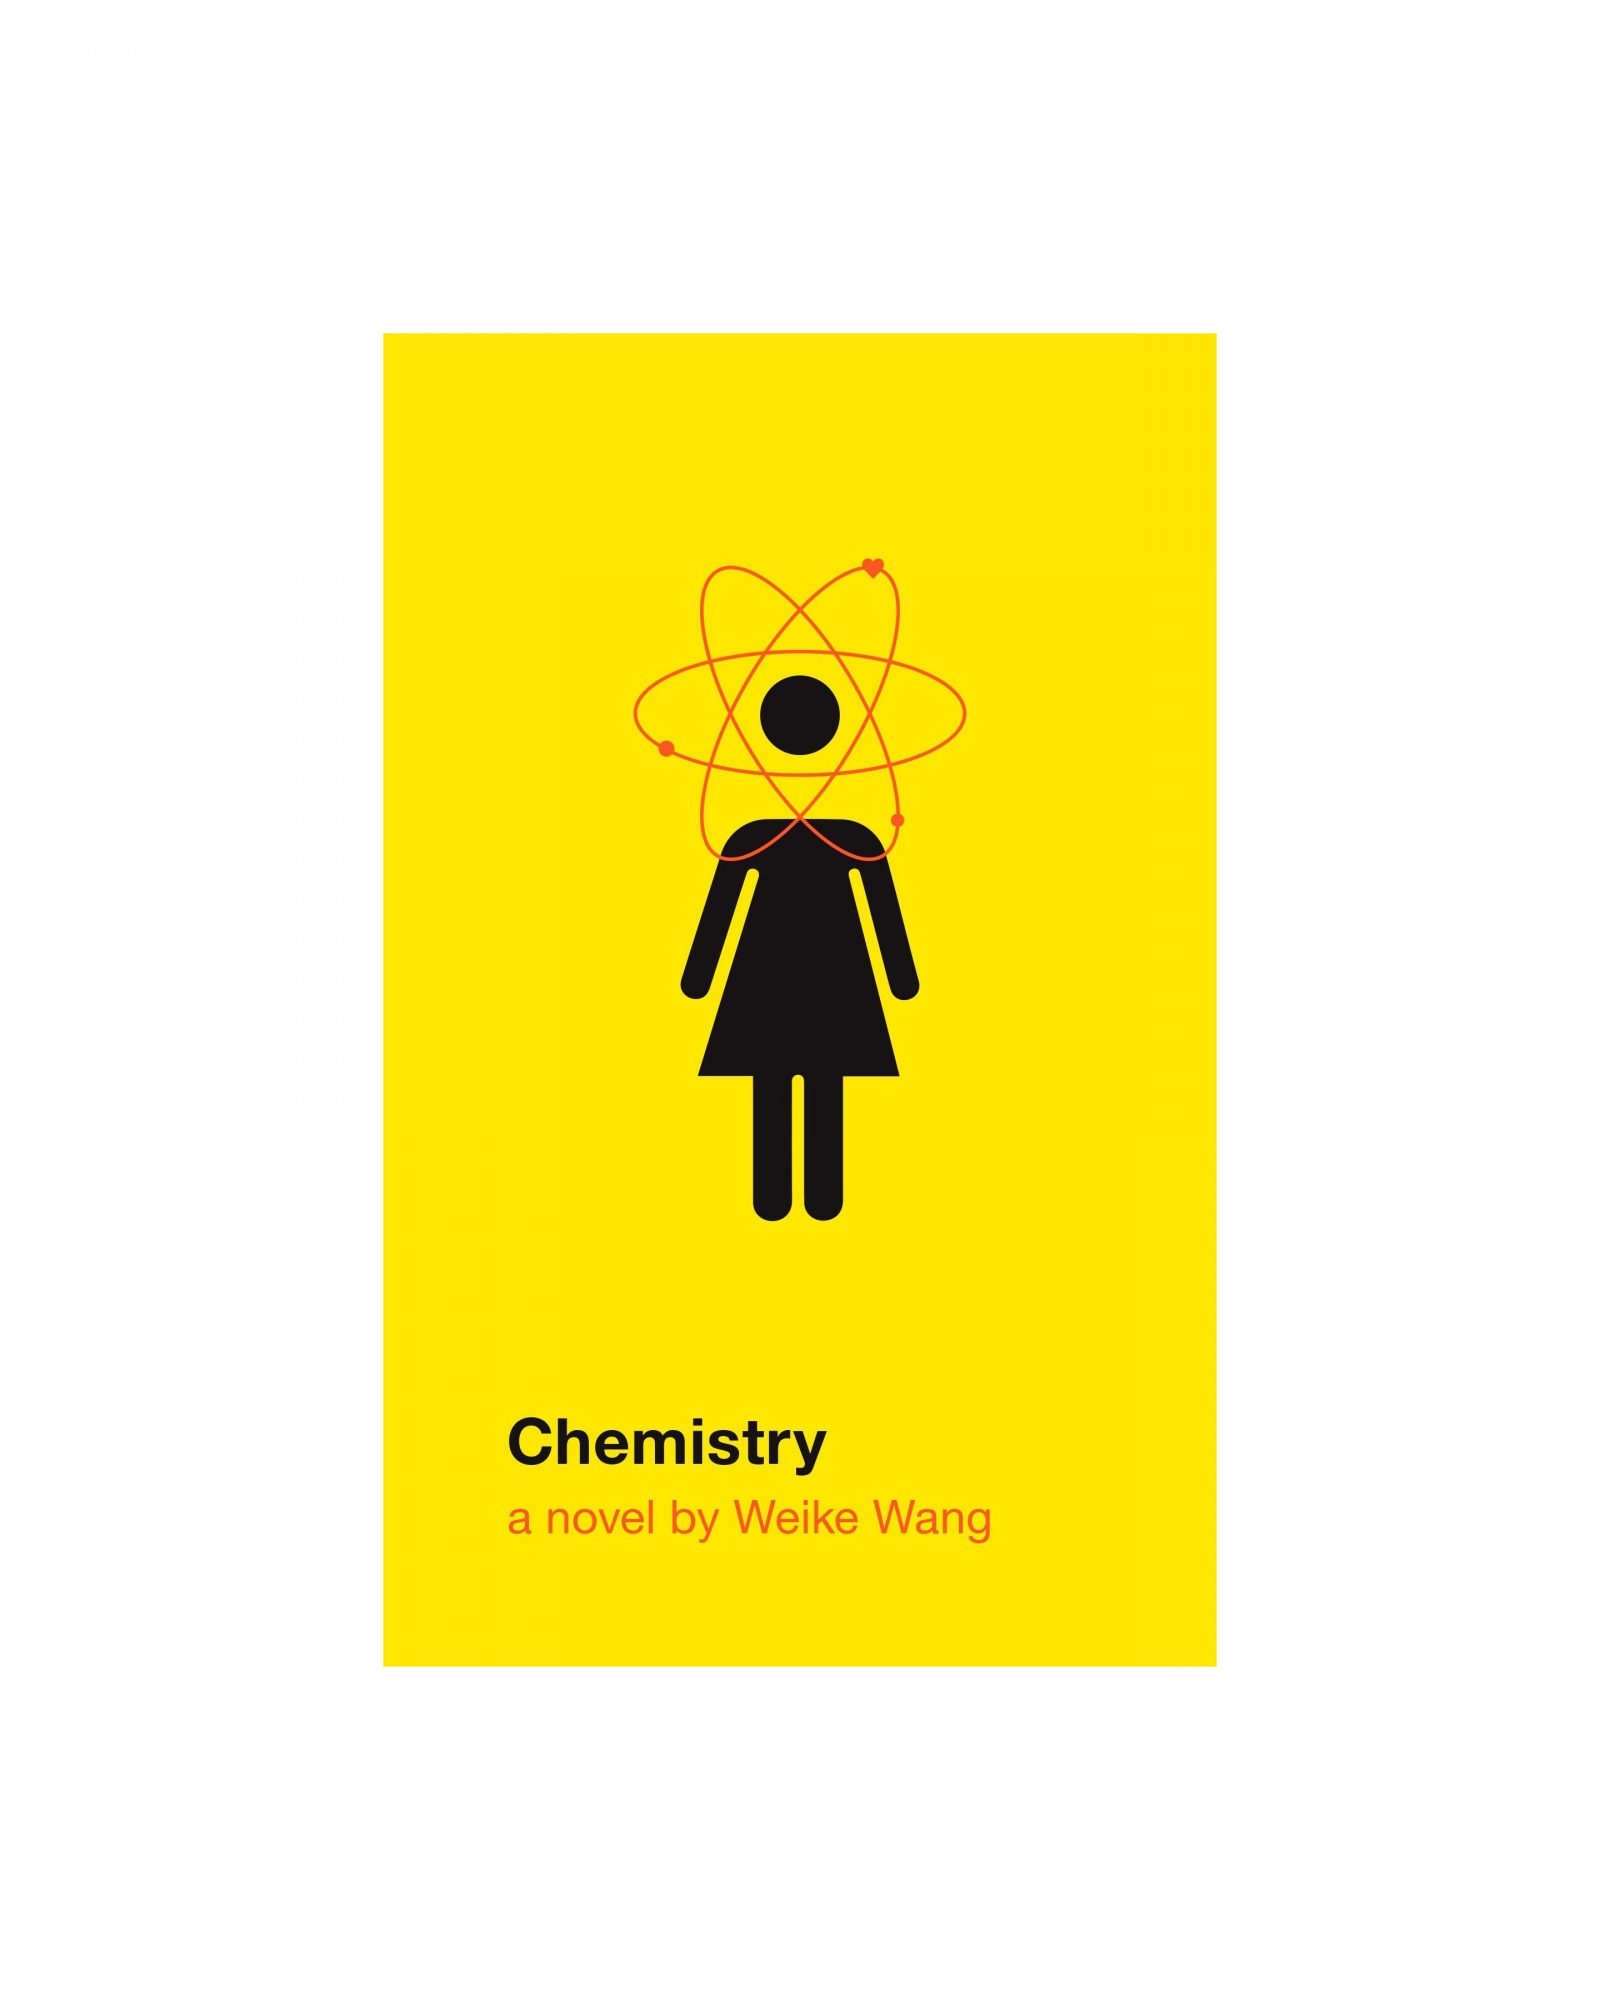 Chemistry, by Weike Wang